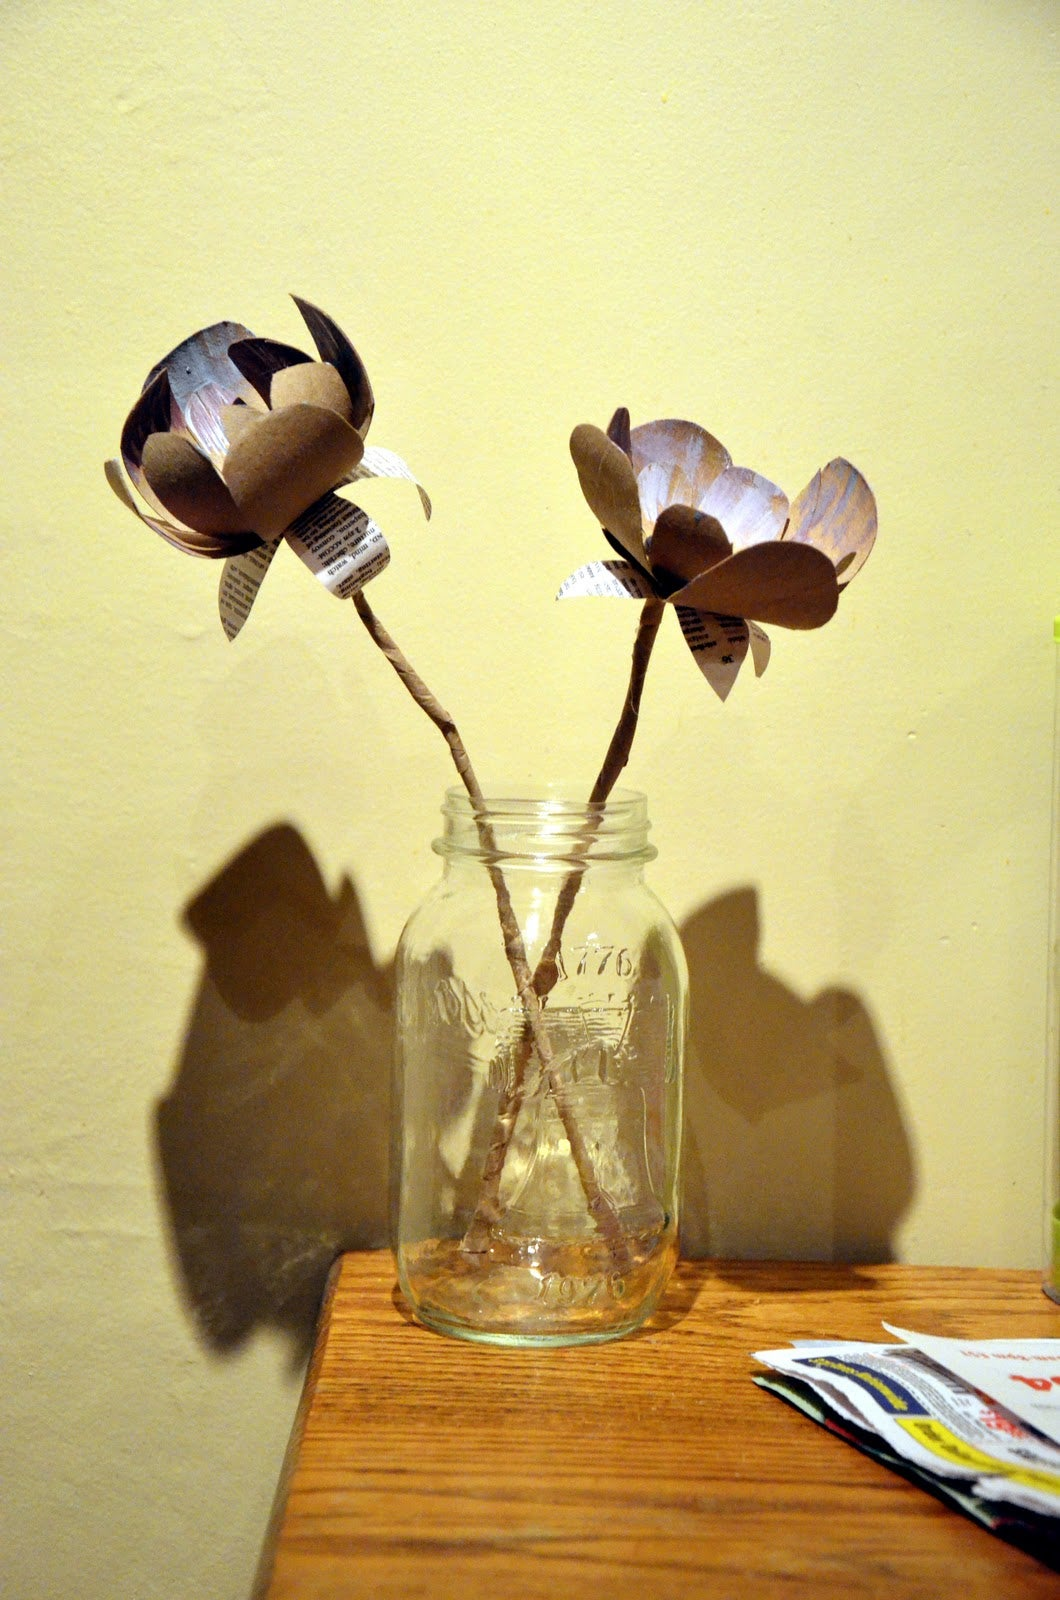 Toilet Paper Roll Flowers: 7 Steps (with Pictures)